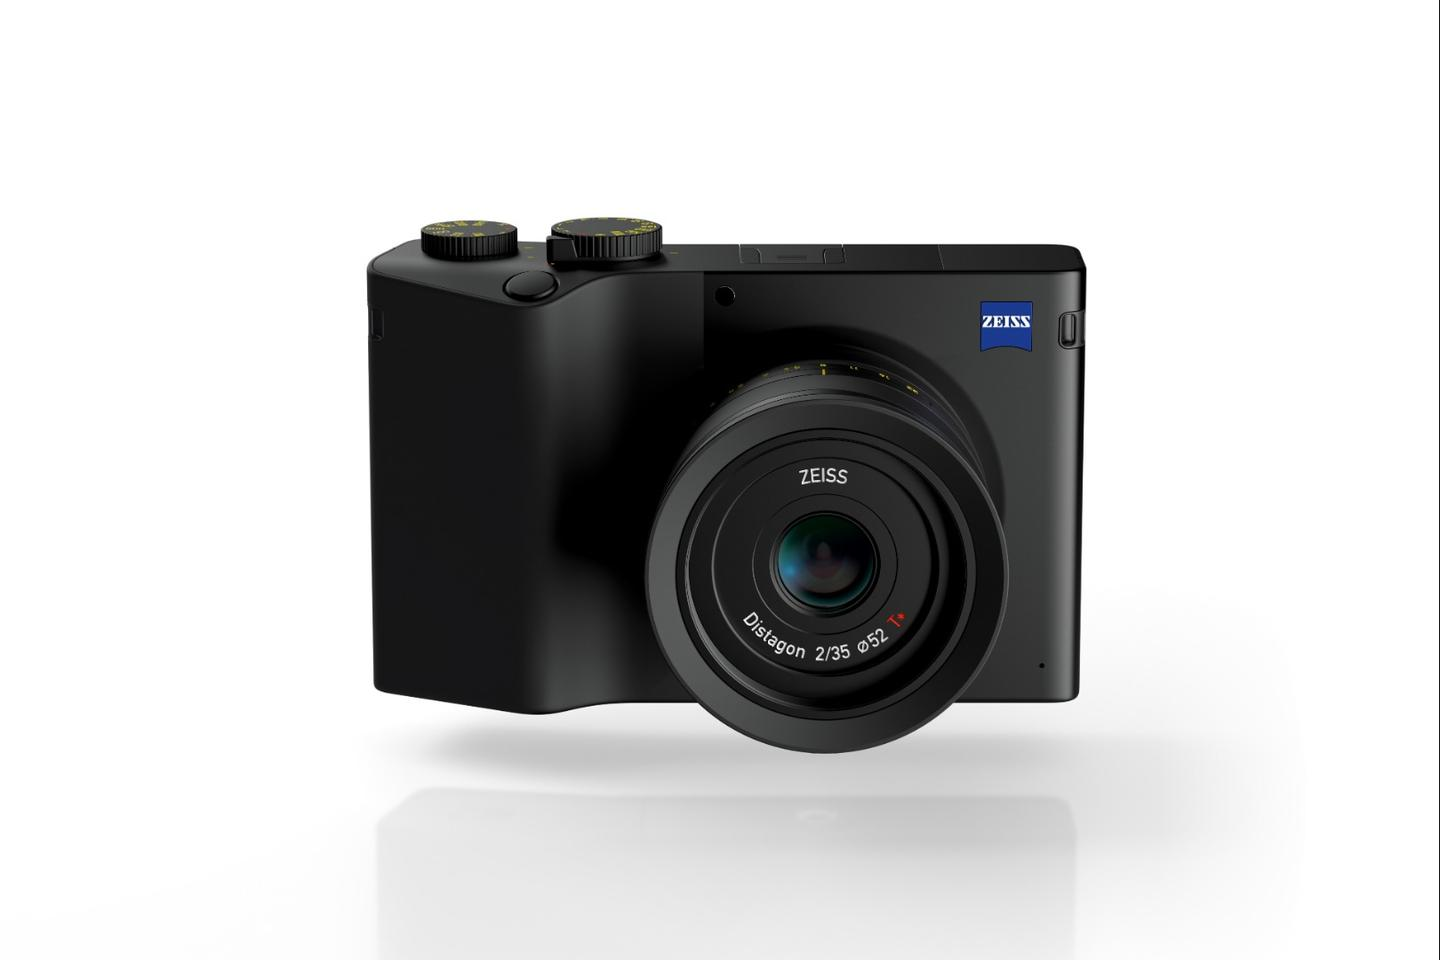 The Zeiss ZX1 features a brand new Distagon 35 mm F2 T lens and the company's own 37.4 MP full-frame image sensor